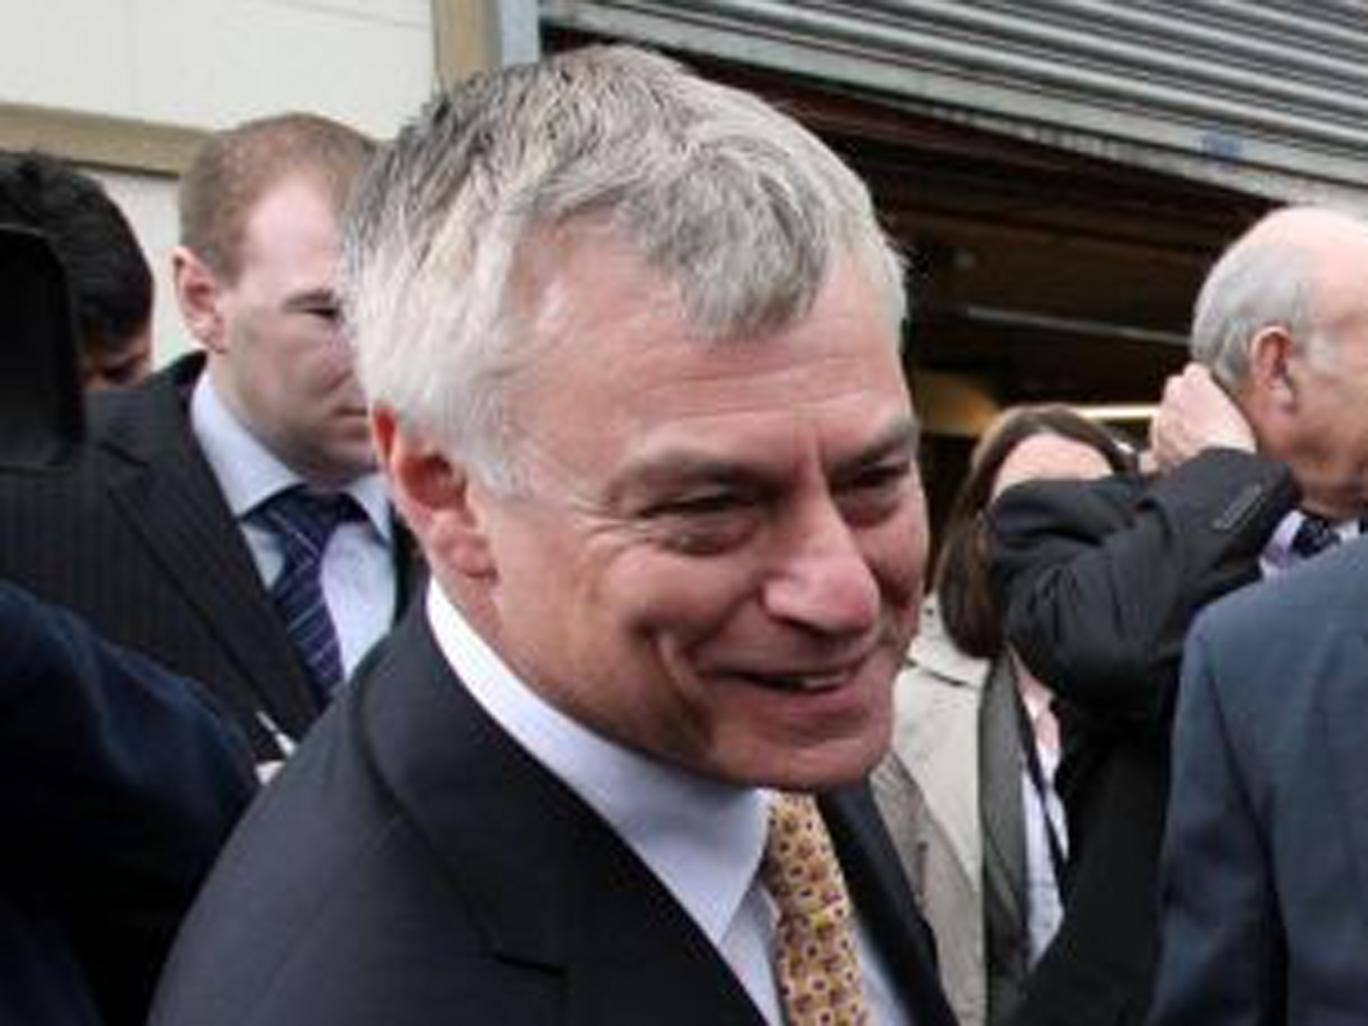 David Ward has had the whip withdrawn until 13 September